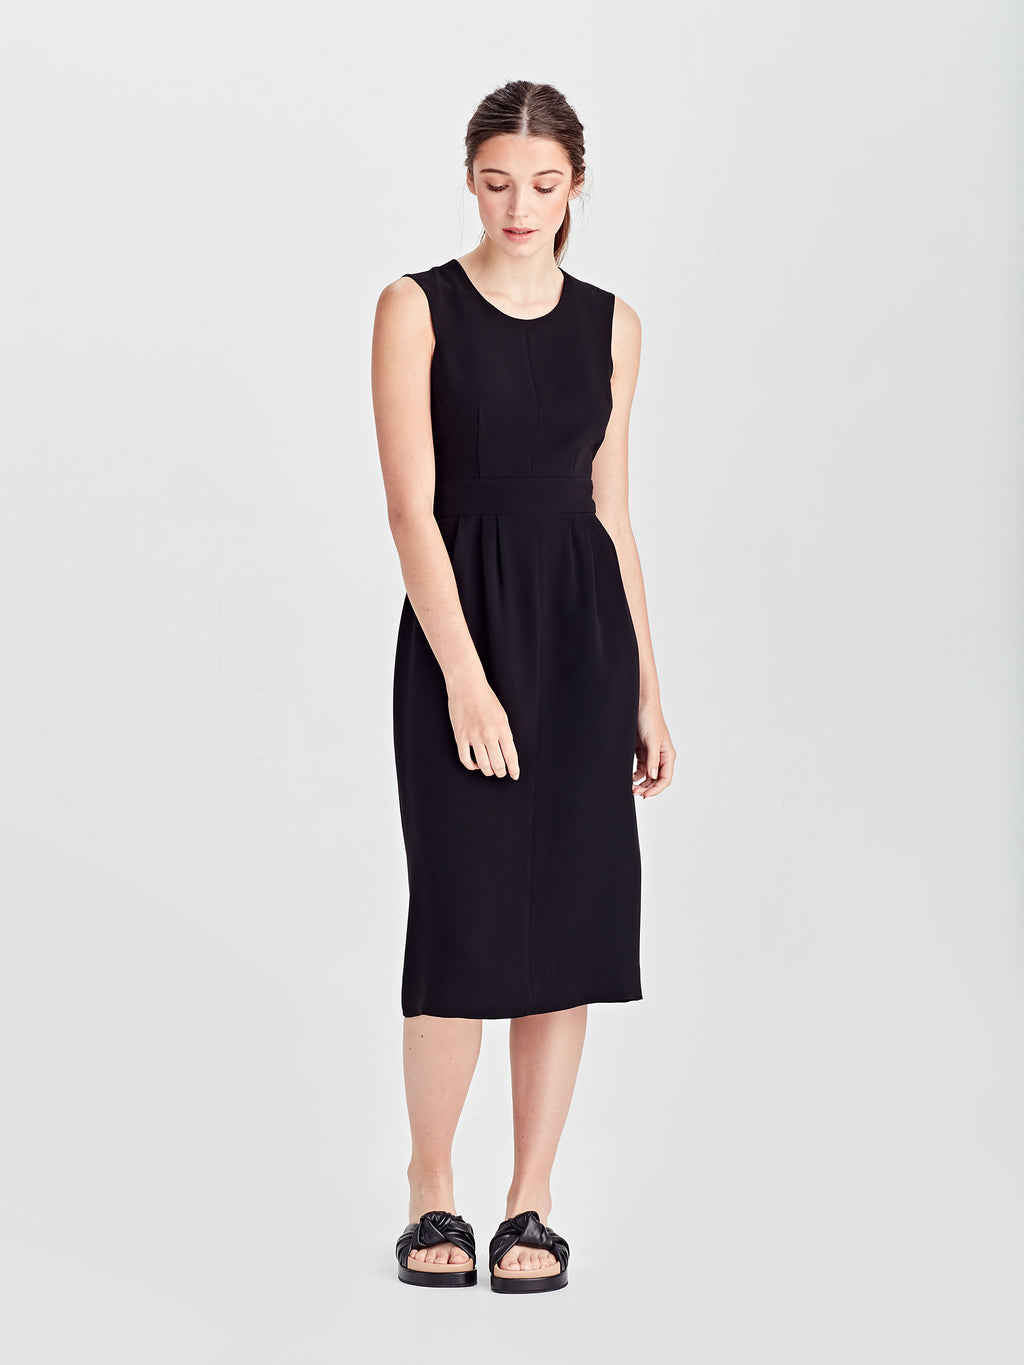 Nicole Dress (Luxe Coloured Suiting) Black